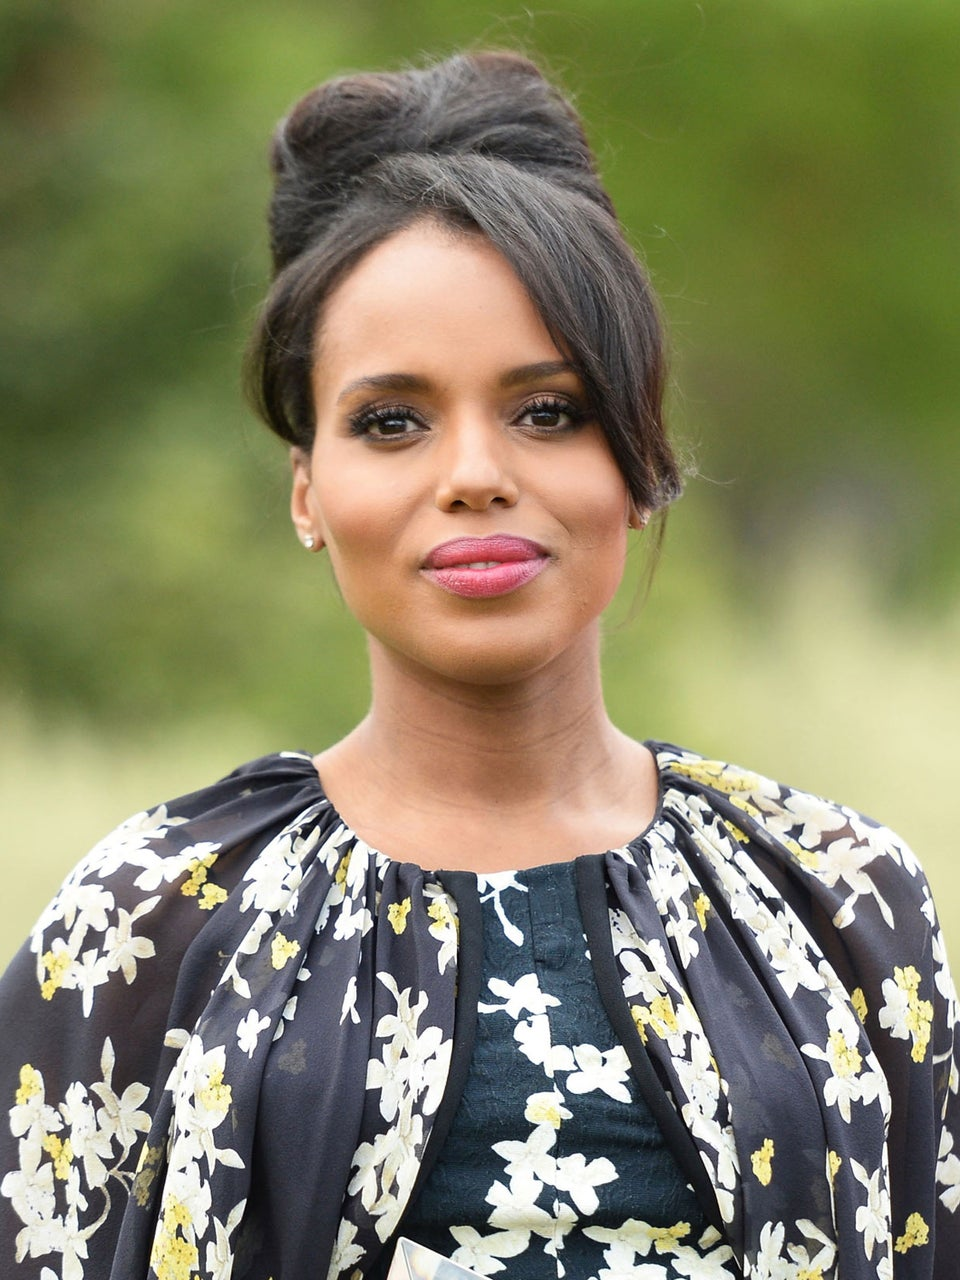 Kerry Washington Is Back For a Table Read of 'Scandal' Rocking Cornrows